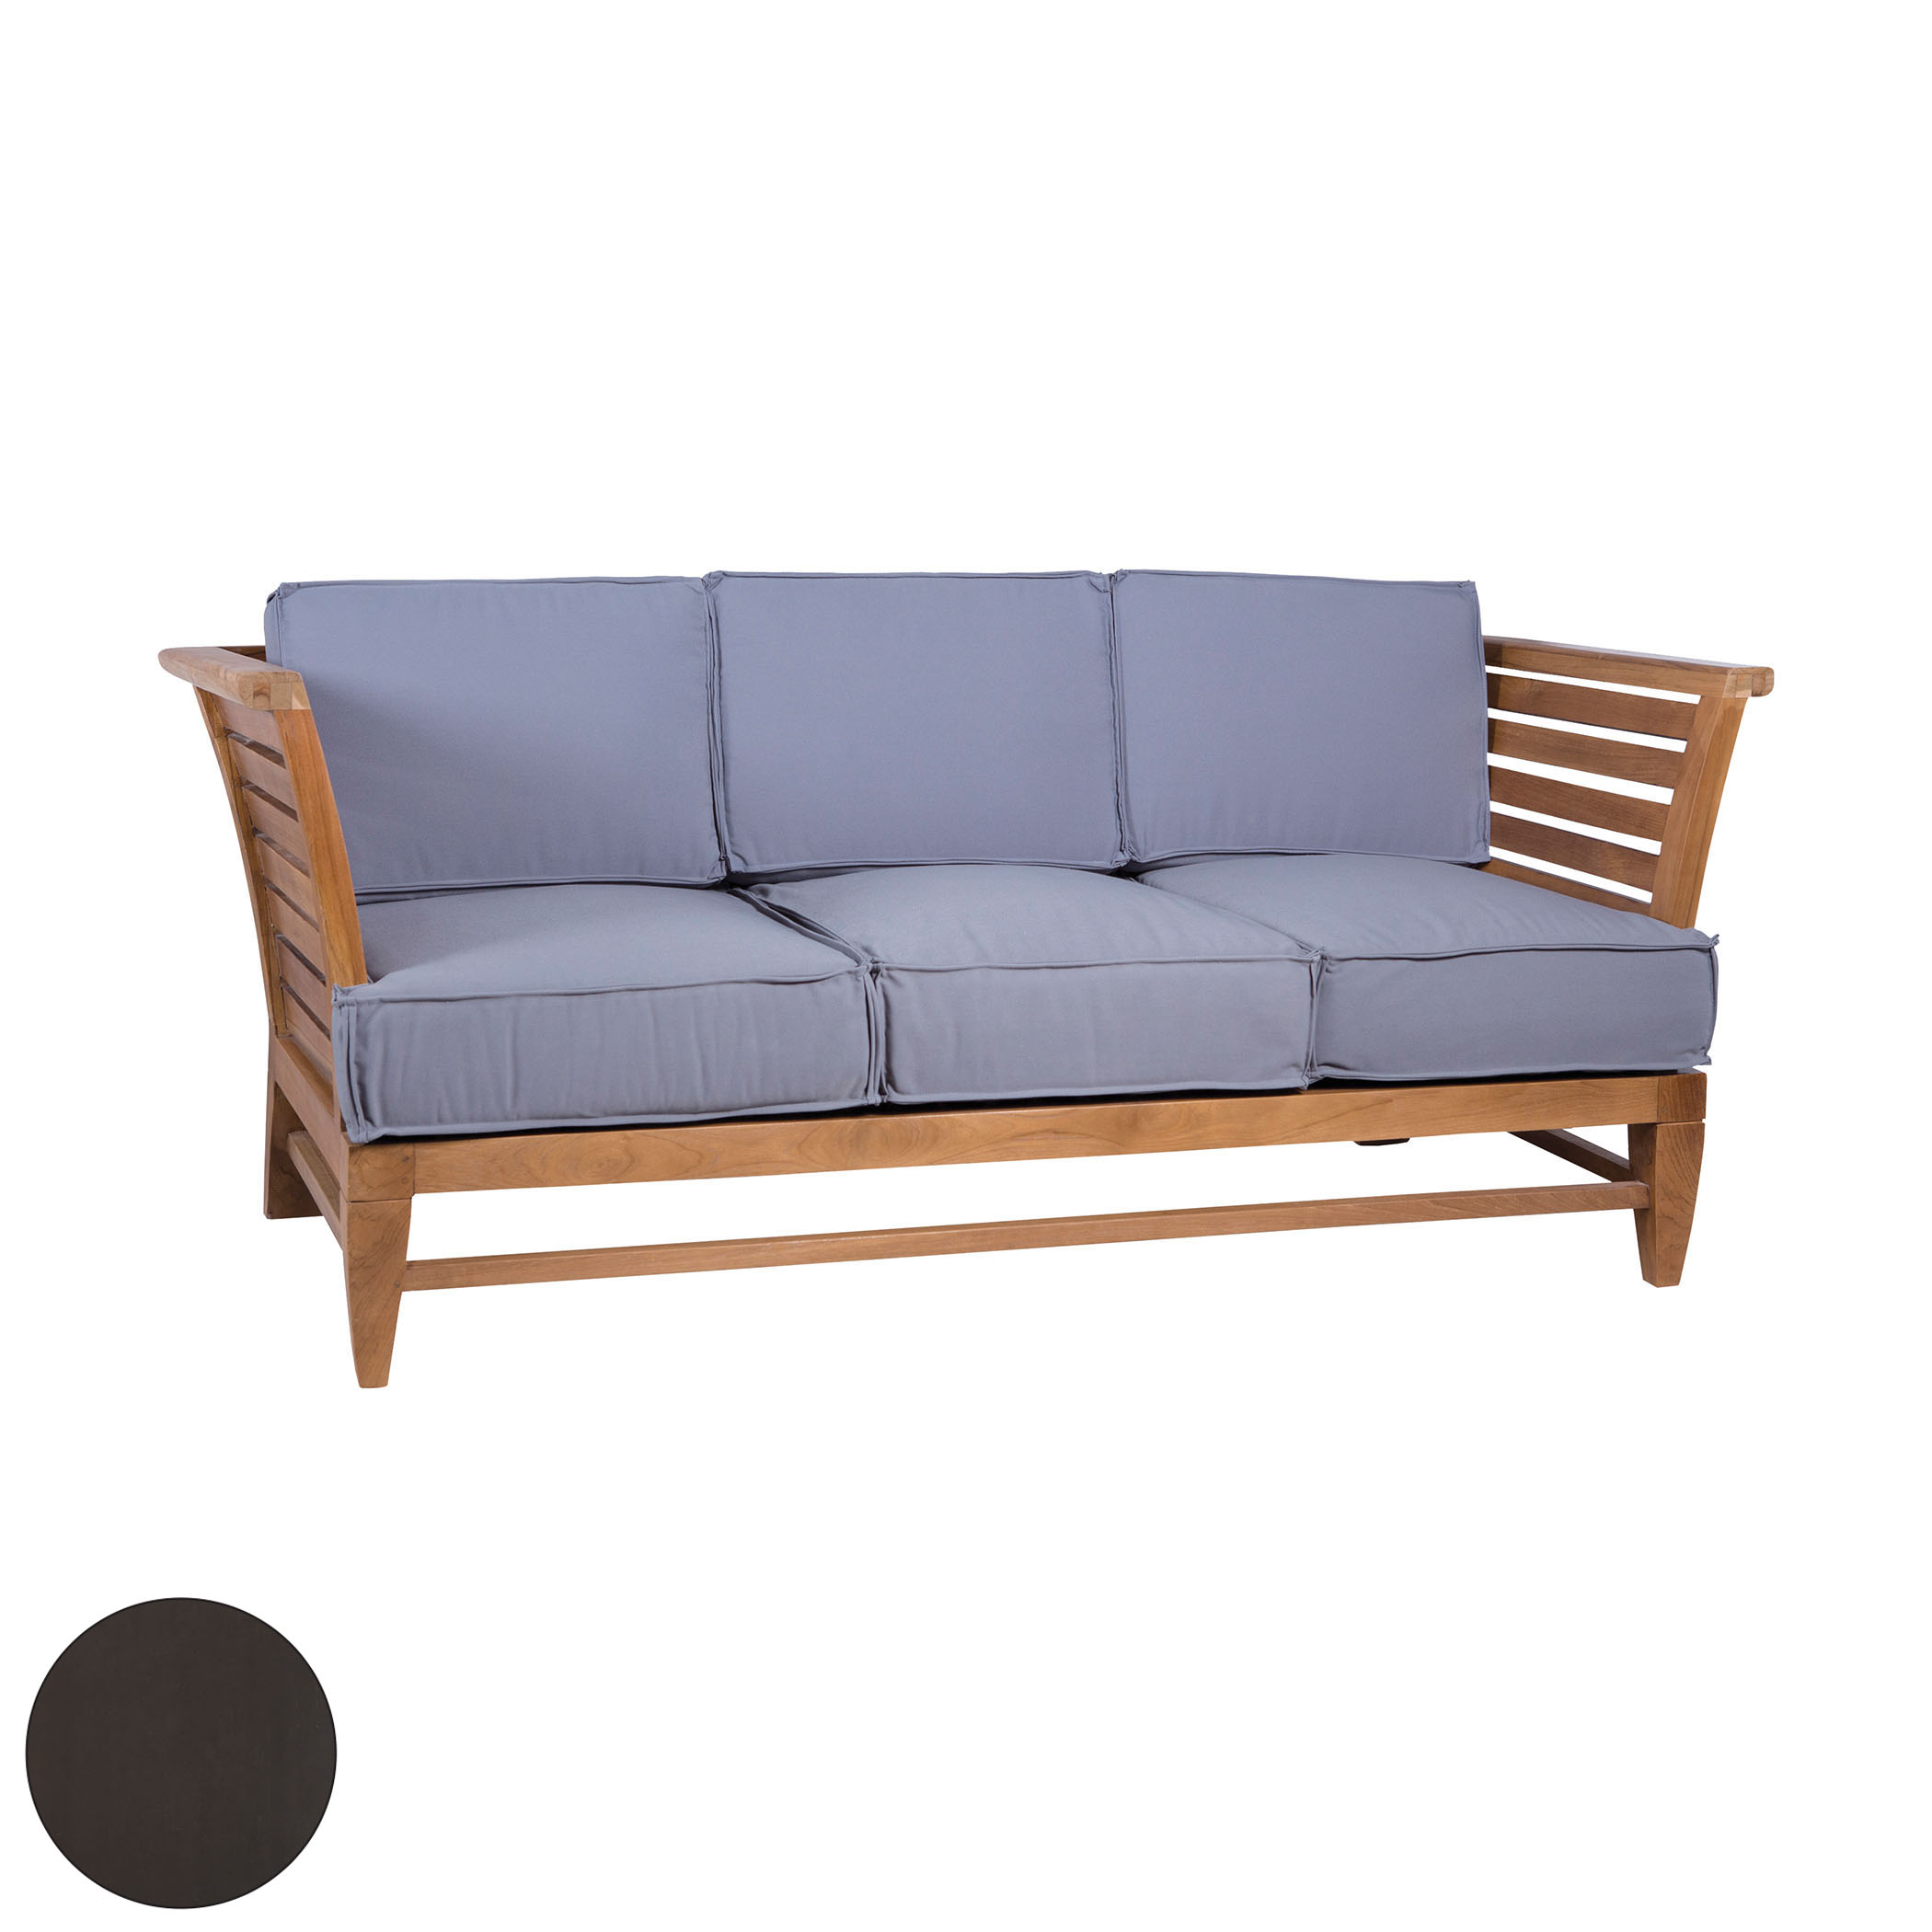 Galveston Pier Sofa 6517503AS | ELK Home